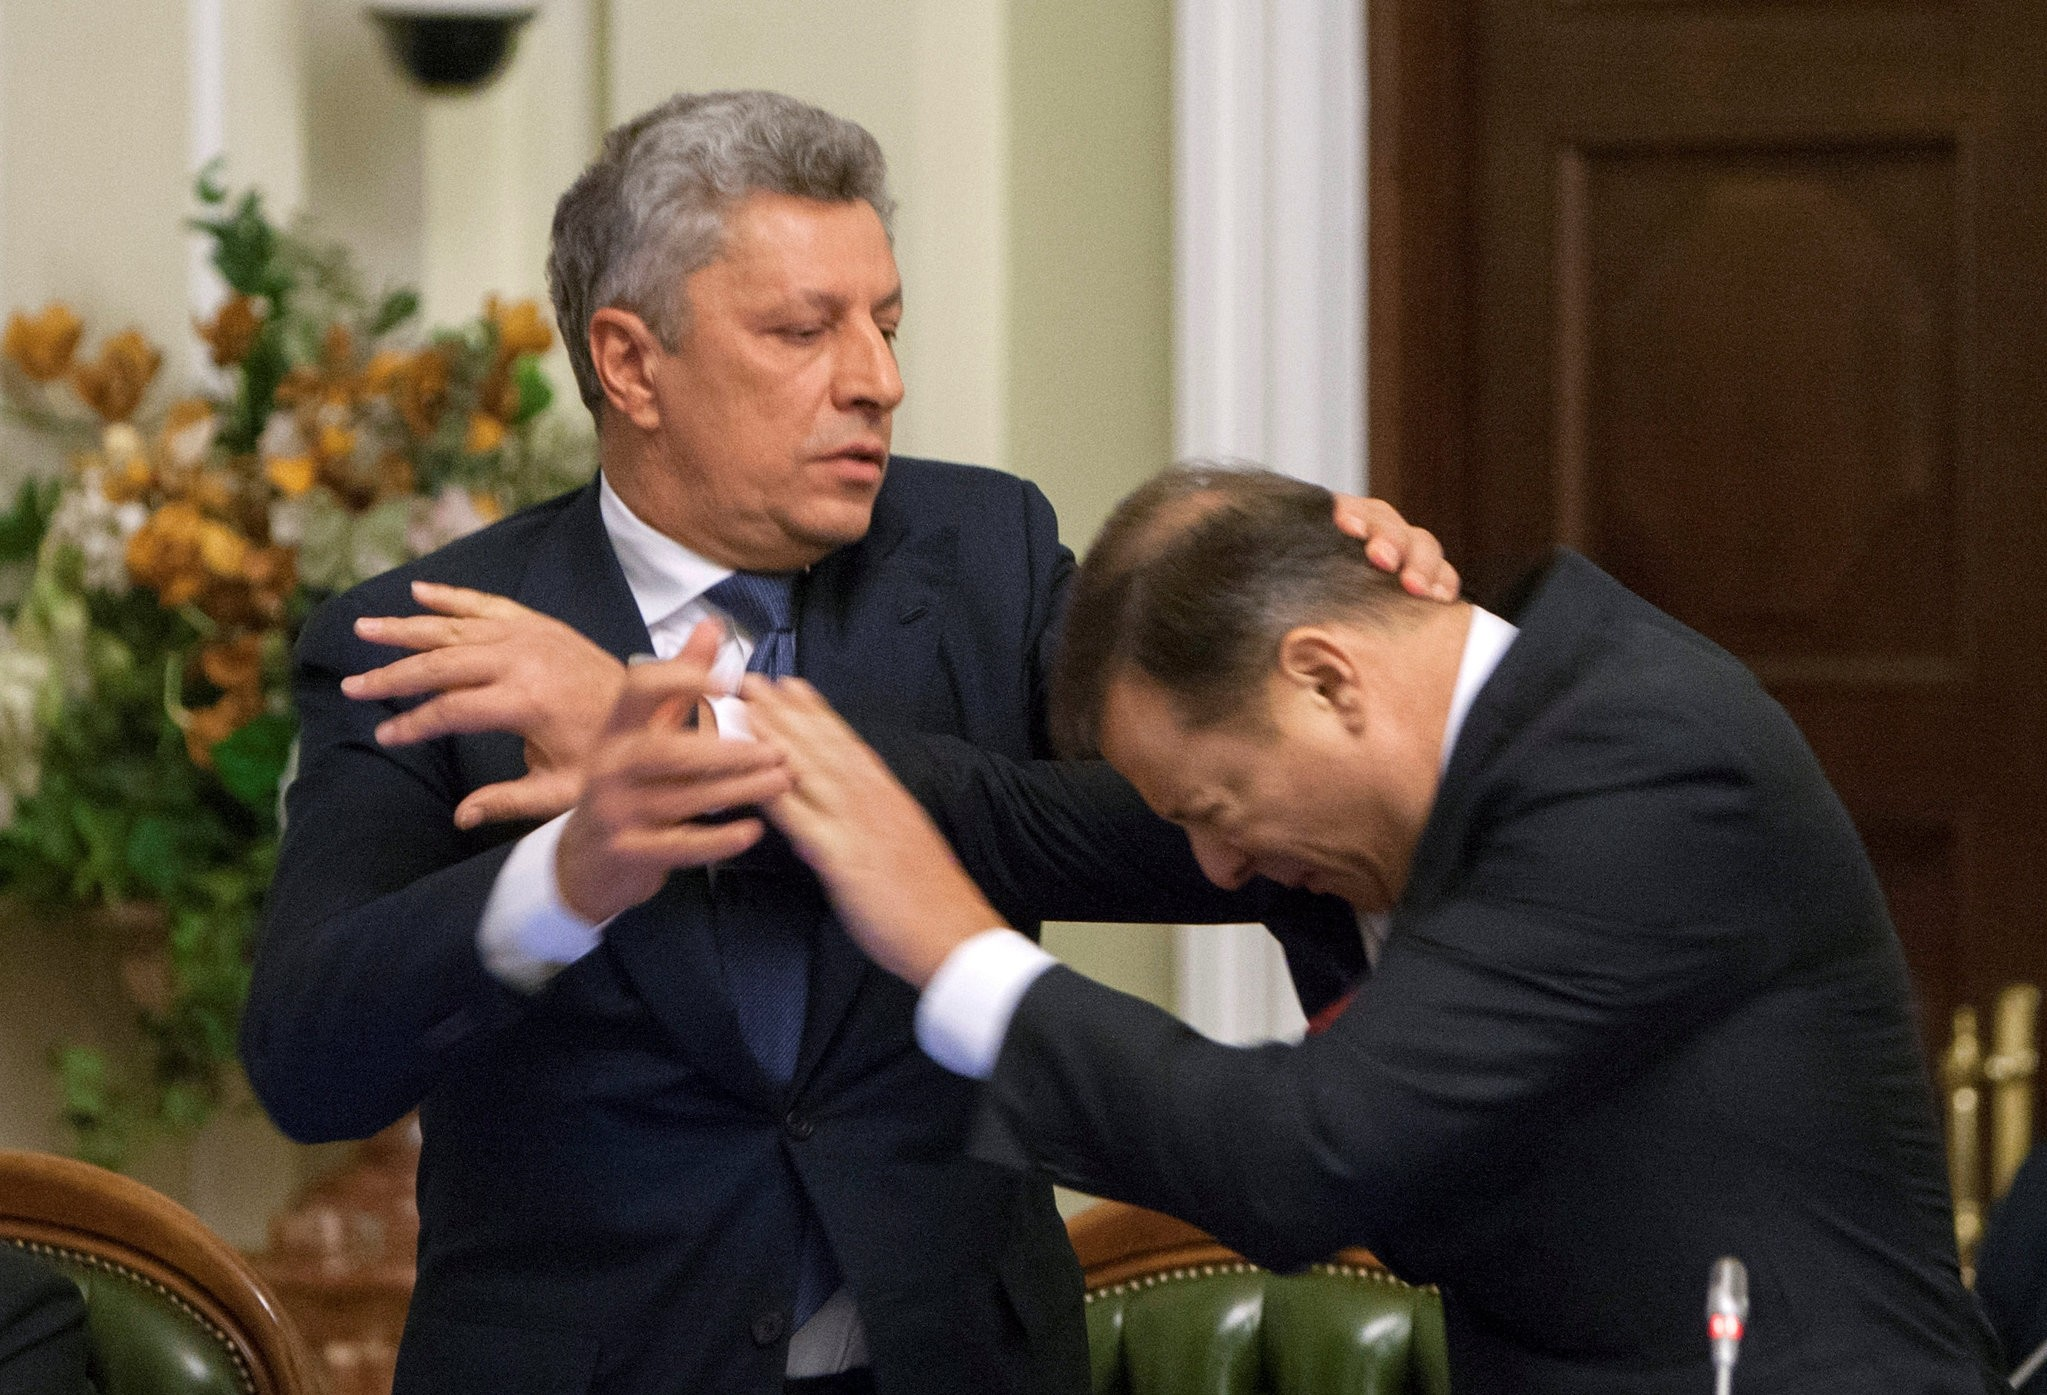 Opposition Party leader Yuriy Boyko (L) and leader of Radical Party Oleh Lyashko scuffle during a meeting of parliament faction leaders in Kiev, Ukraine, November 14, 2016. (REUTERS Photo)